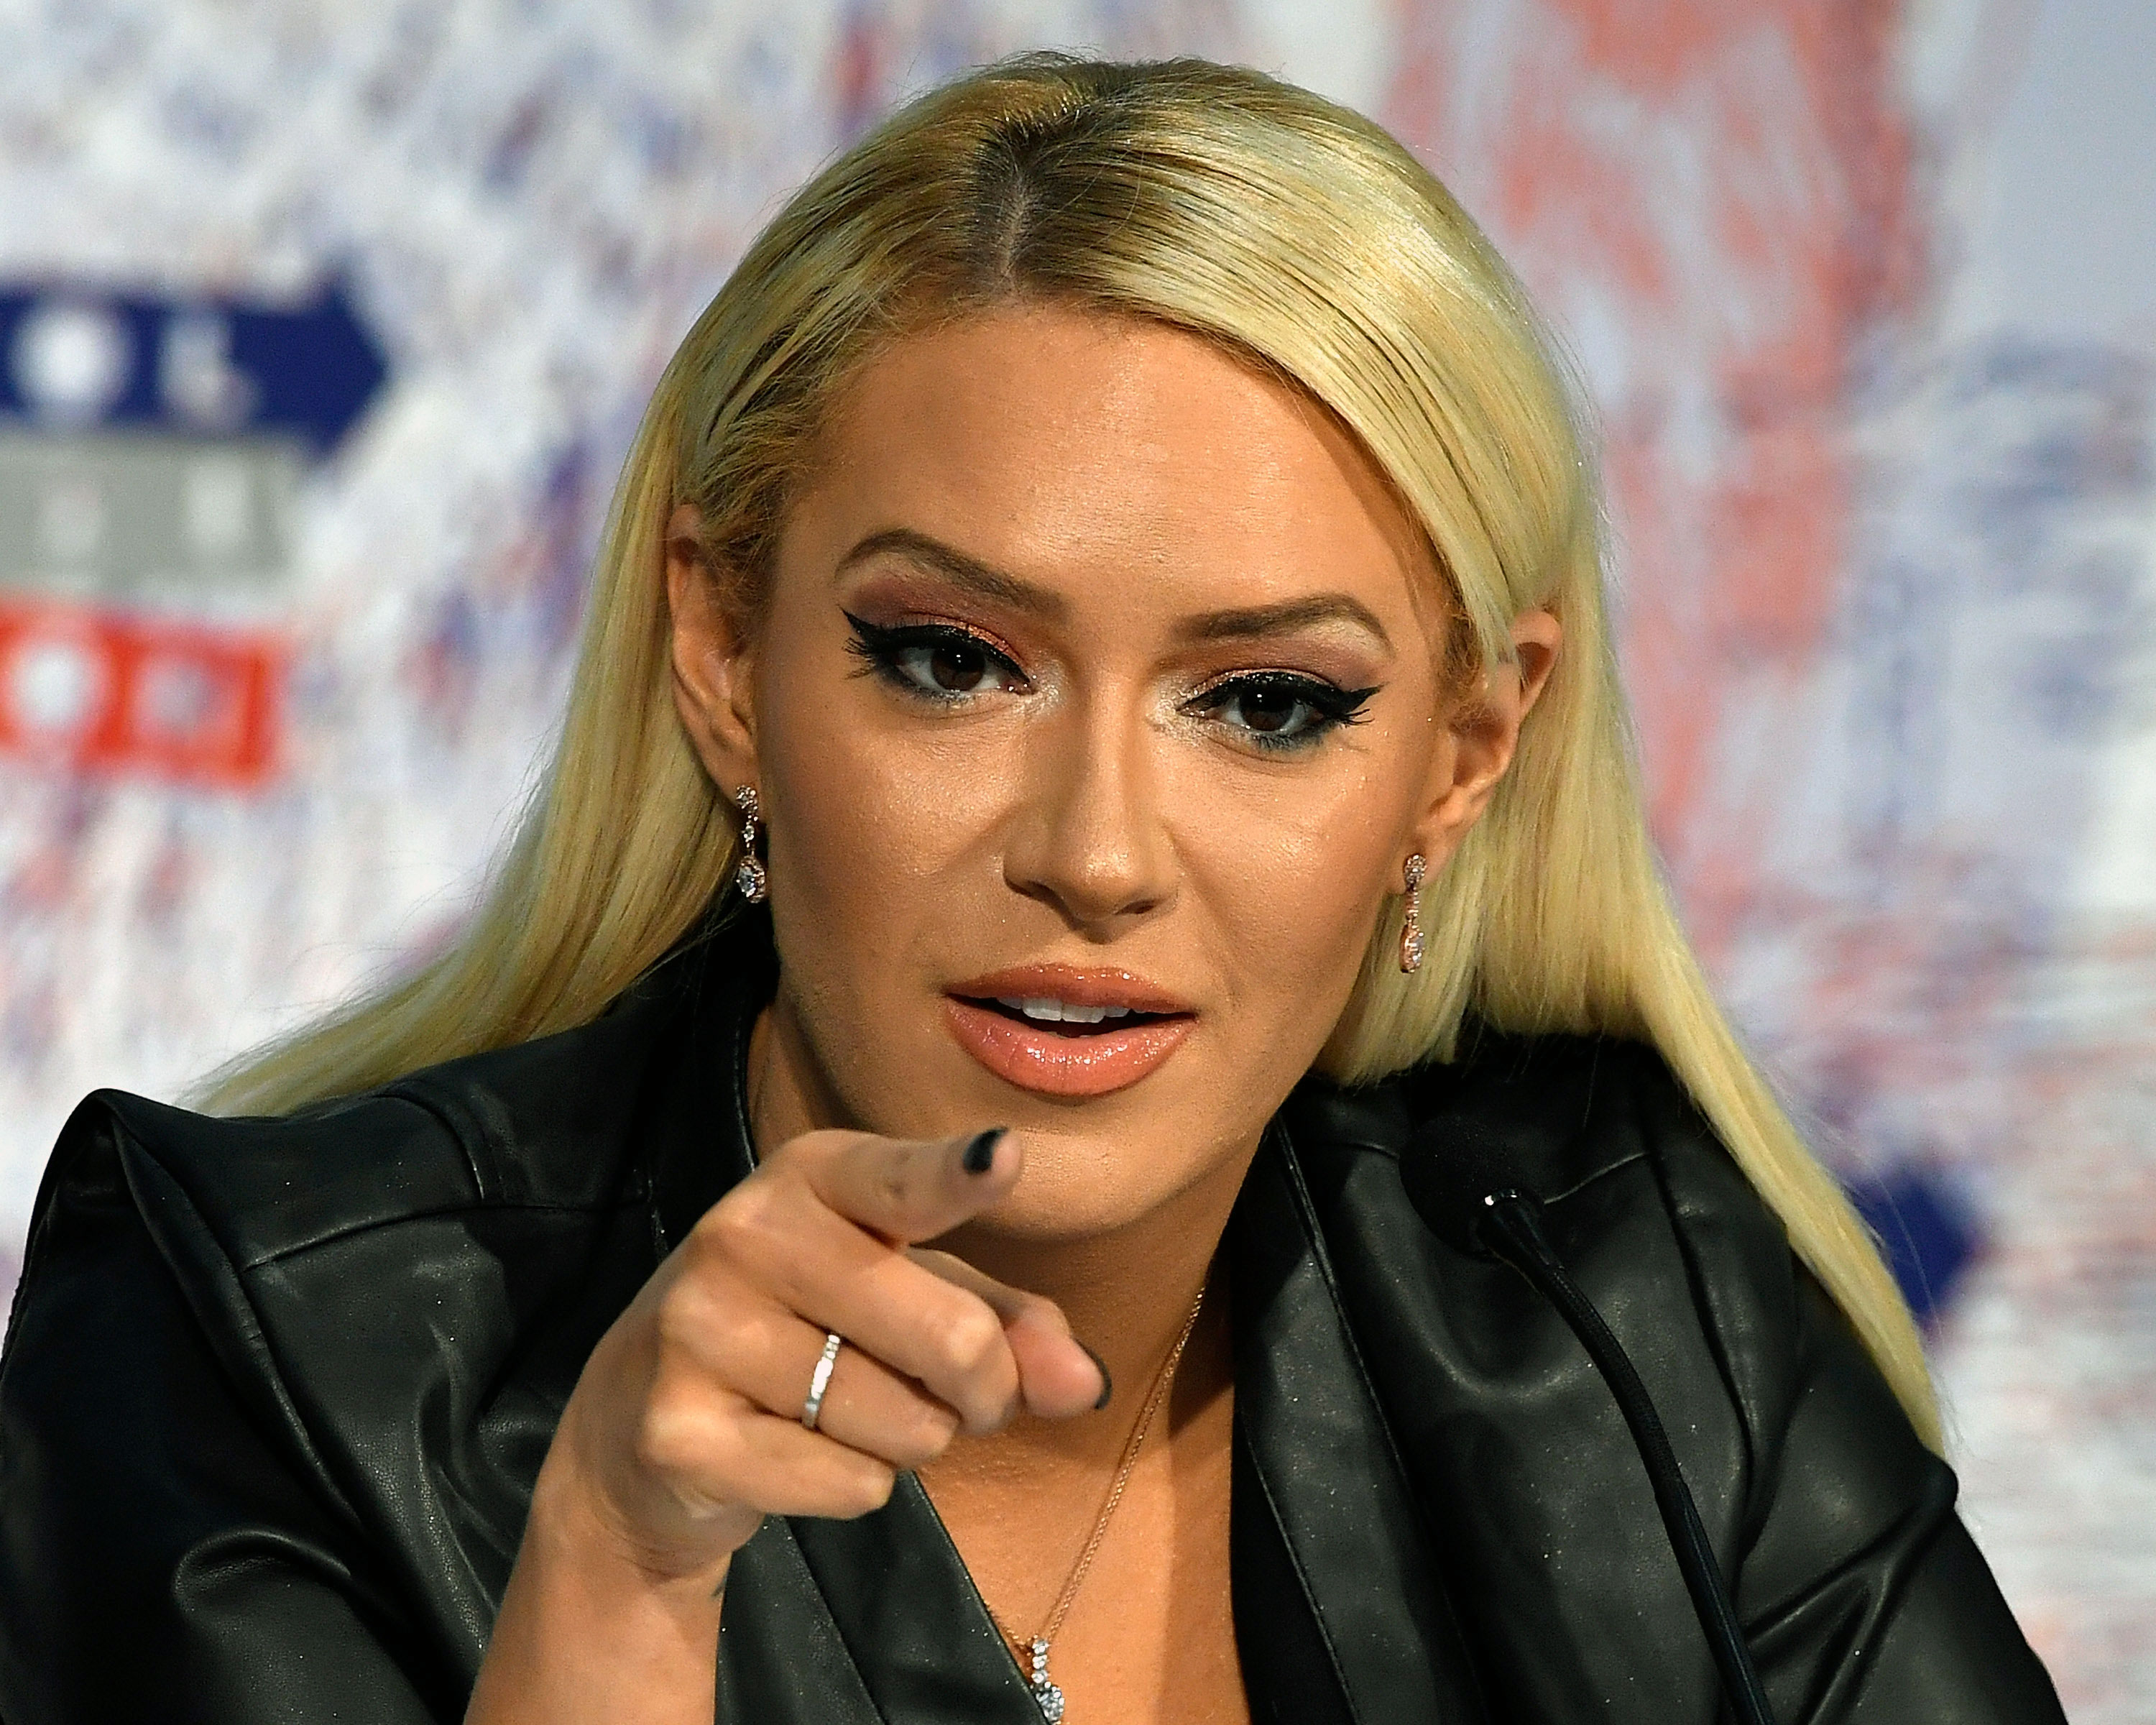 """Kaya Jones React Sri Lanka Bombings - Though Jones initially spoke out in a brief tweet, she later added: """"Hundreds killed because of their faith today in Sri Lanka 🇱🇰 pray and speak up for your Christian brothers and sisters! 8 bombings on Easter Sunday carried out on the Sri Lankan people. 3 hotels, 5 churches. God help us on your holy day."""""""